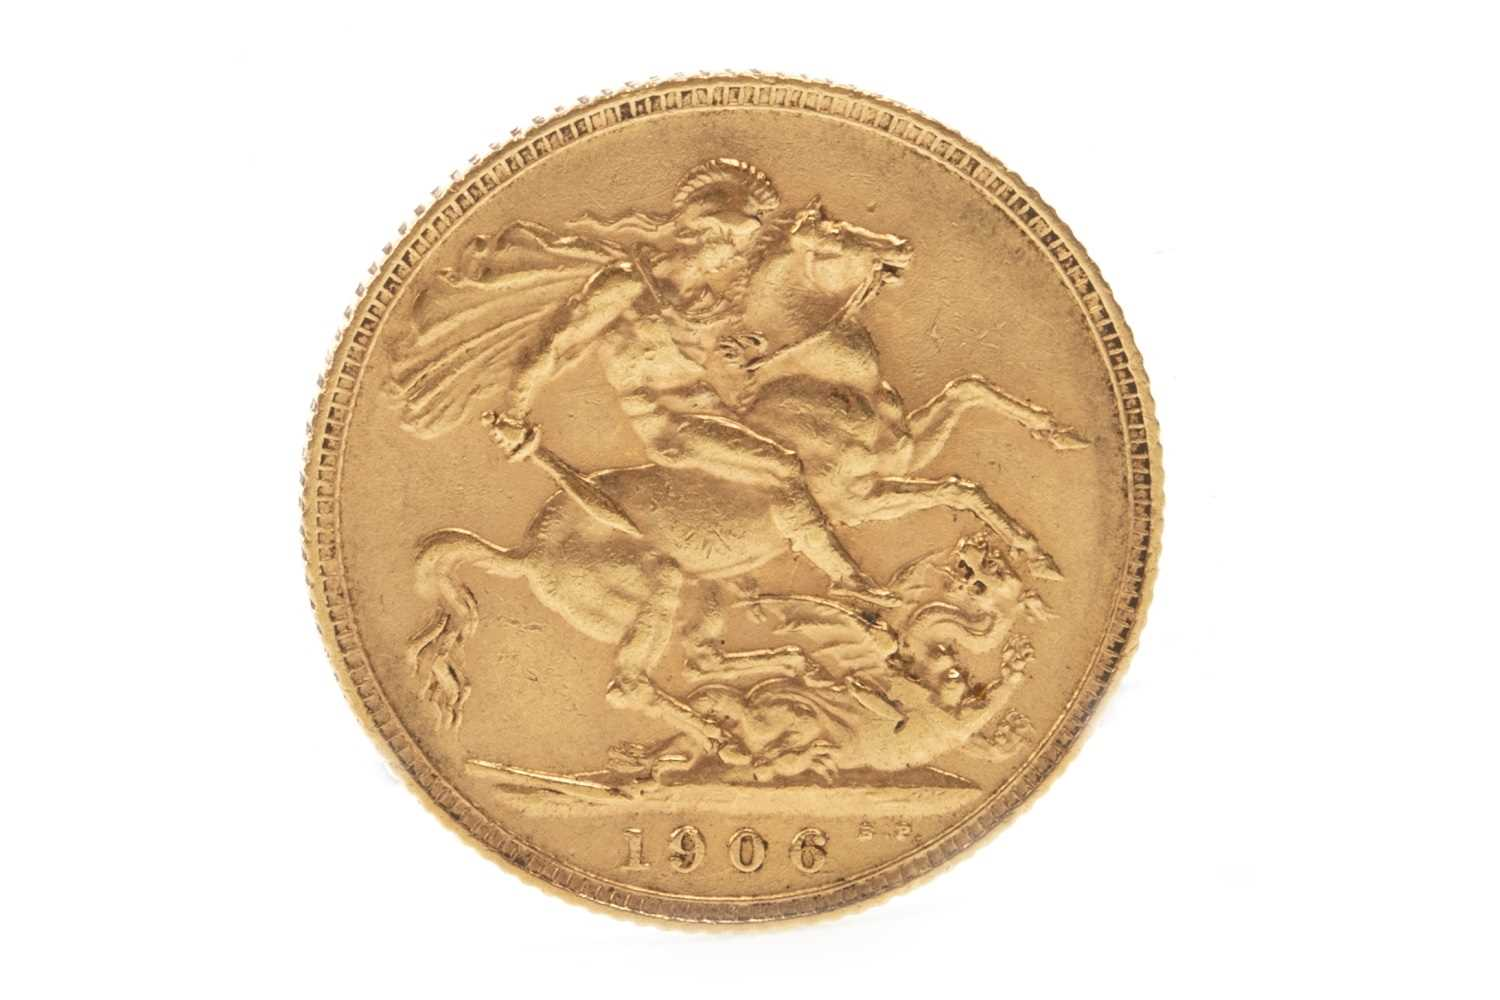 Lot 543 - A GOLD SOVEREIGN, 1906